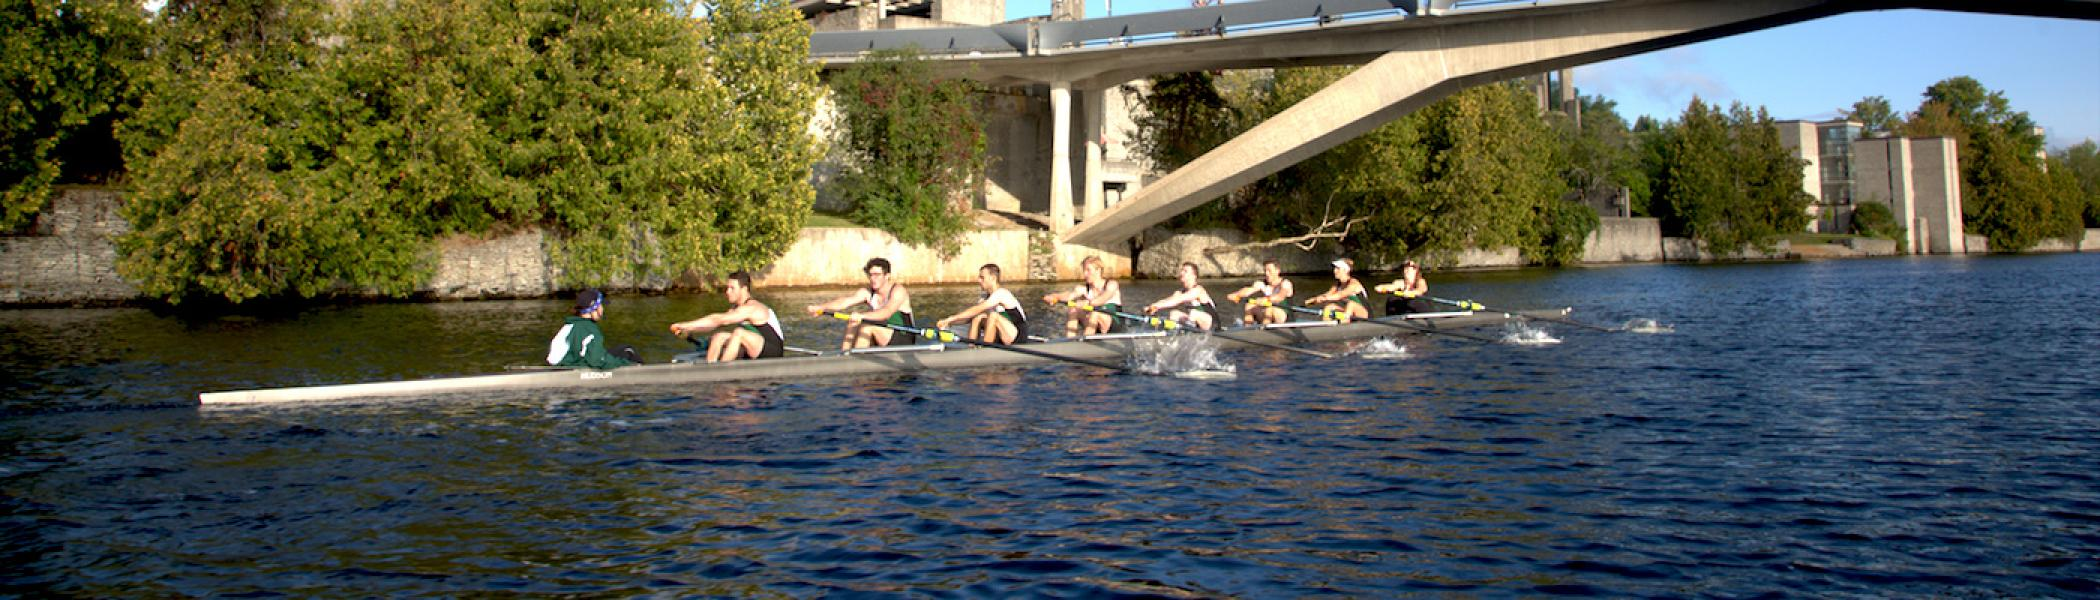 A group of people rowing on the Otonabee River